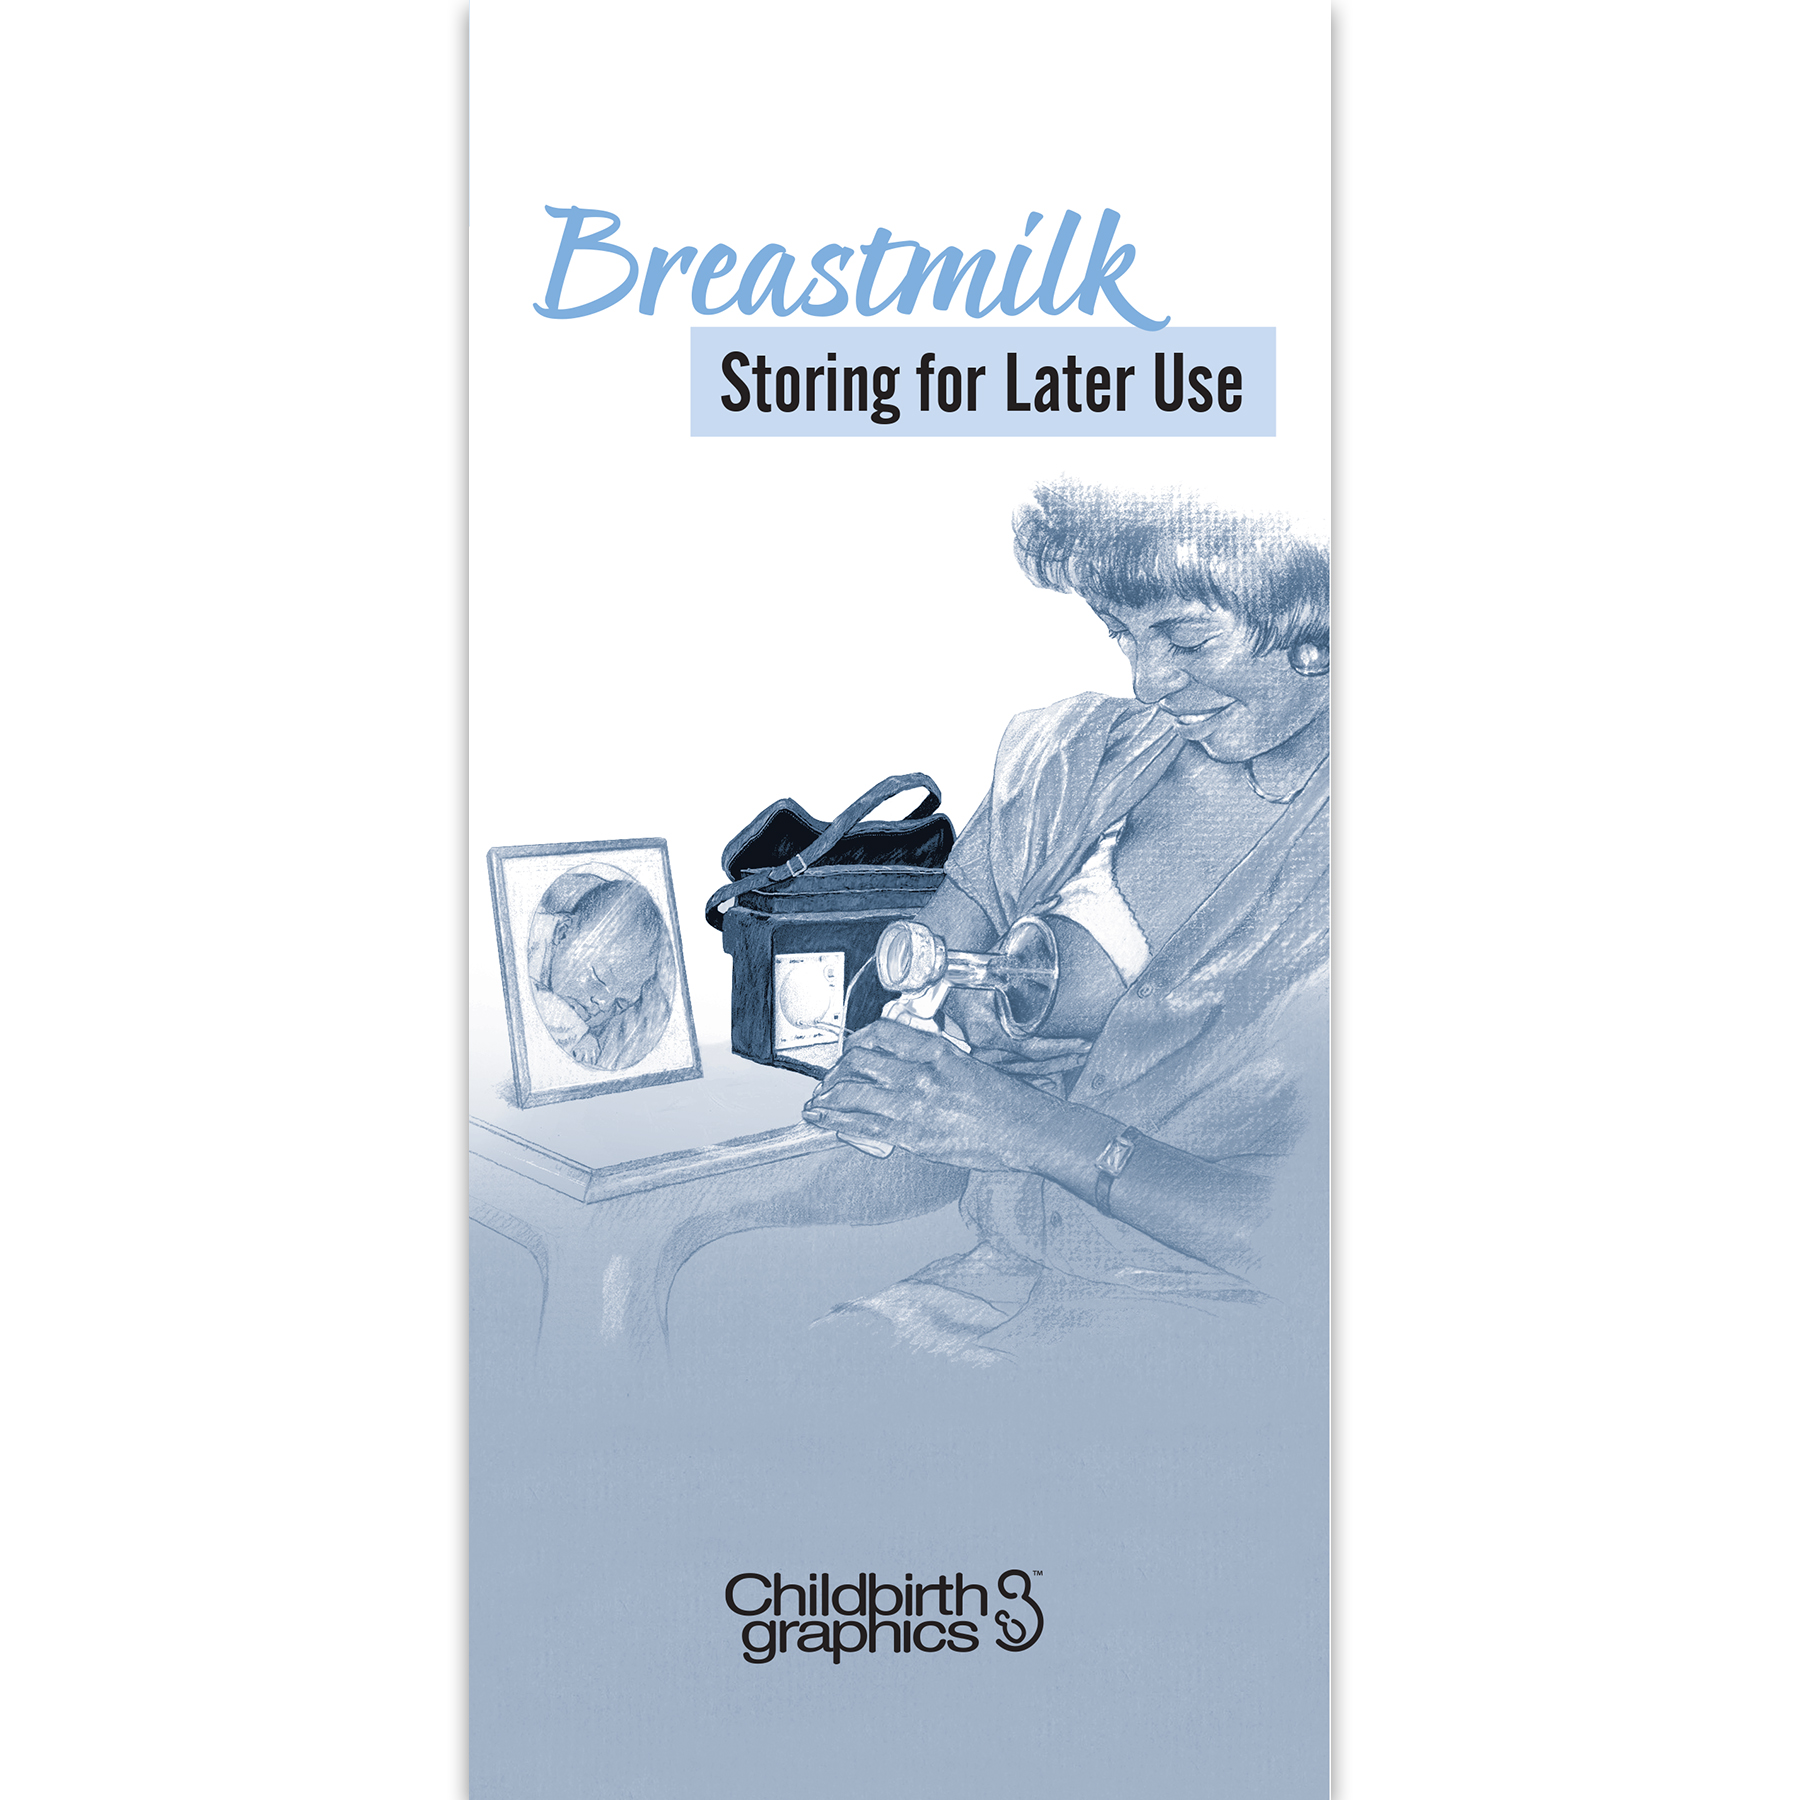 Breastmilk Storing for Later Use two-color illustrated pamphlet cover breast pump, Childbirth Graphics, 38651